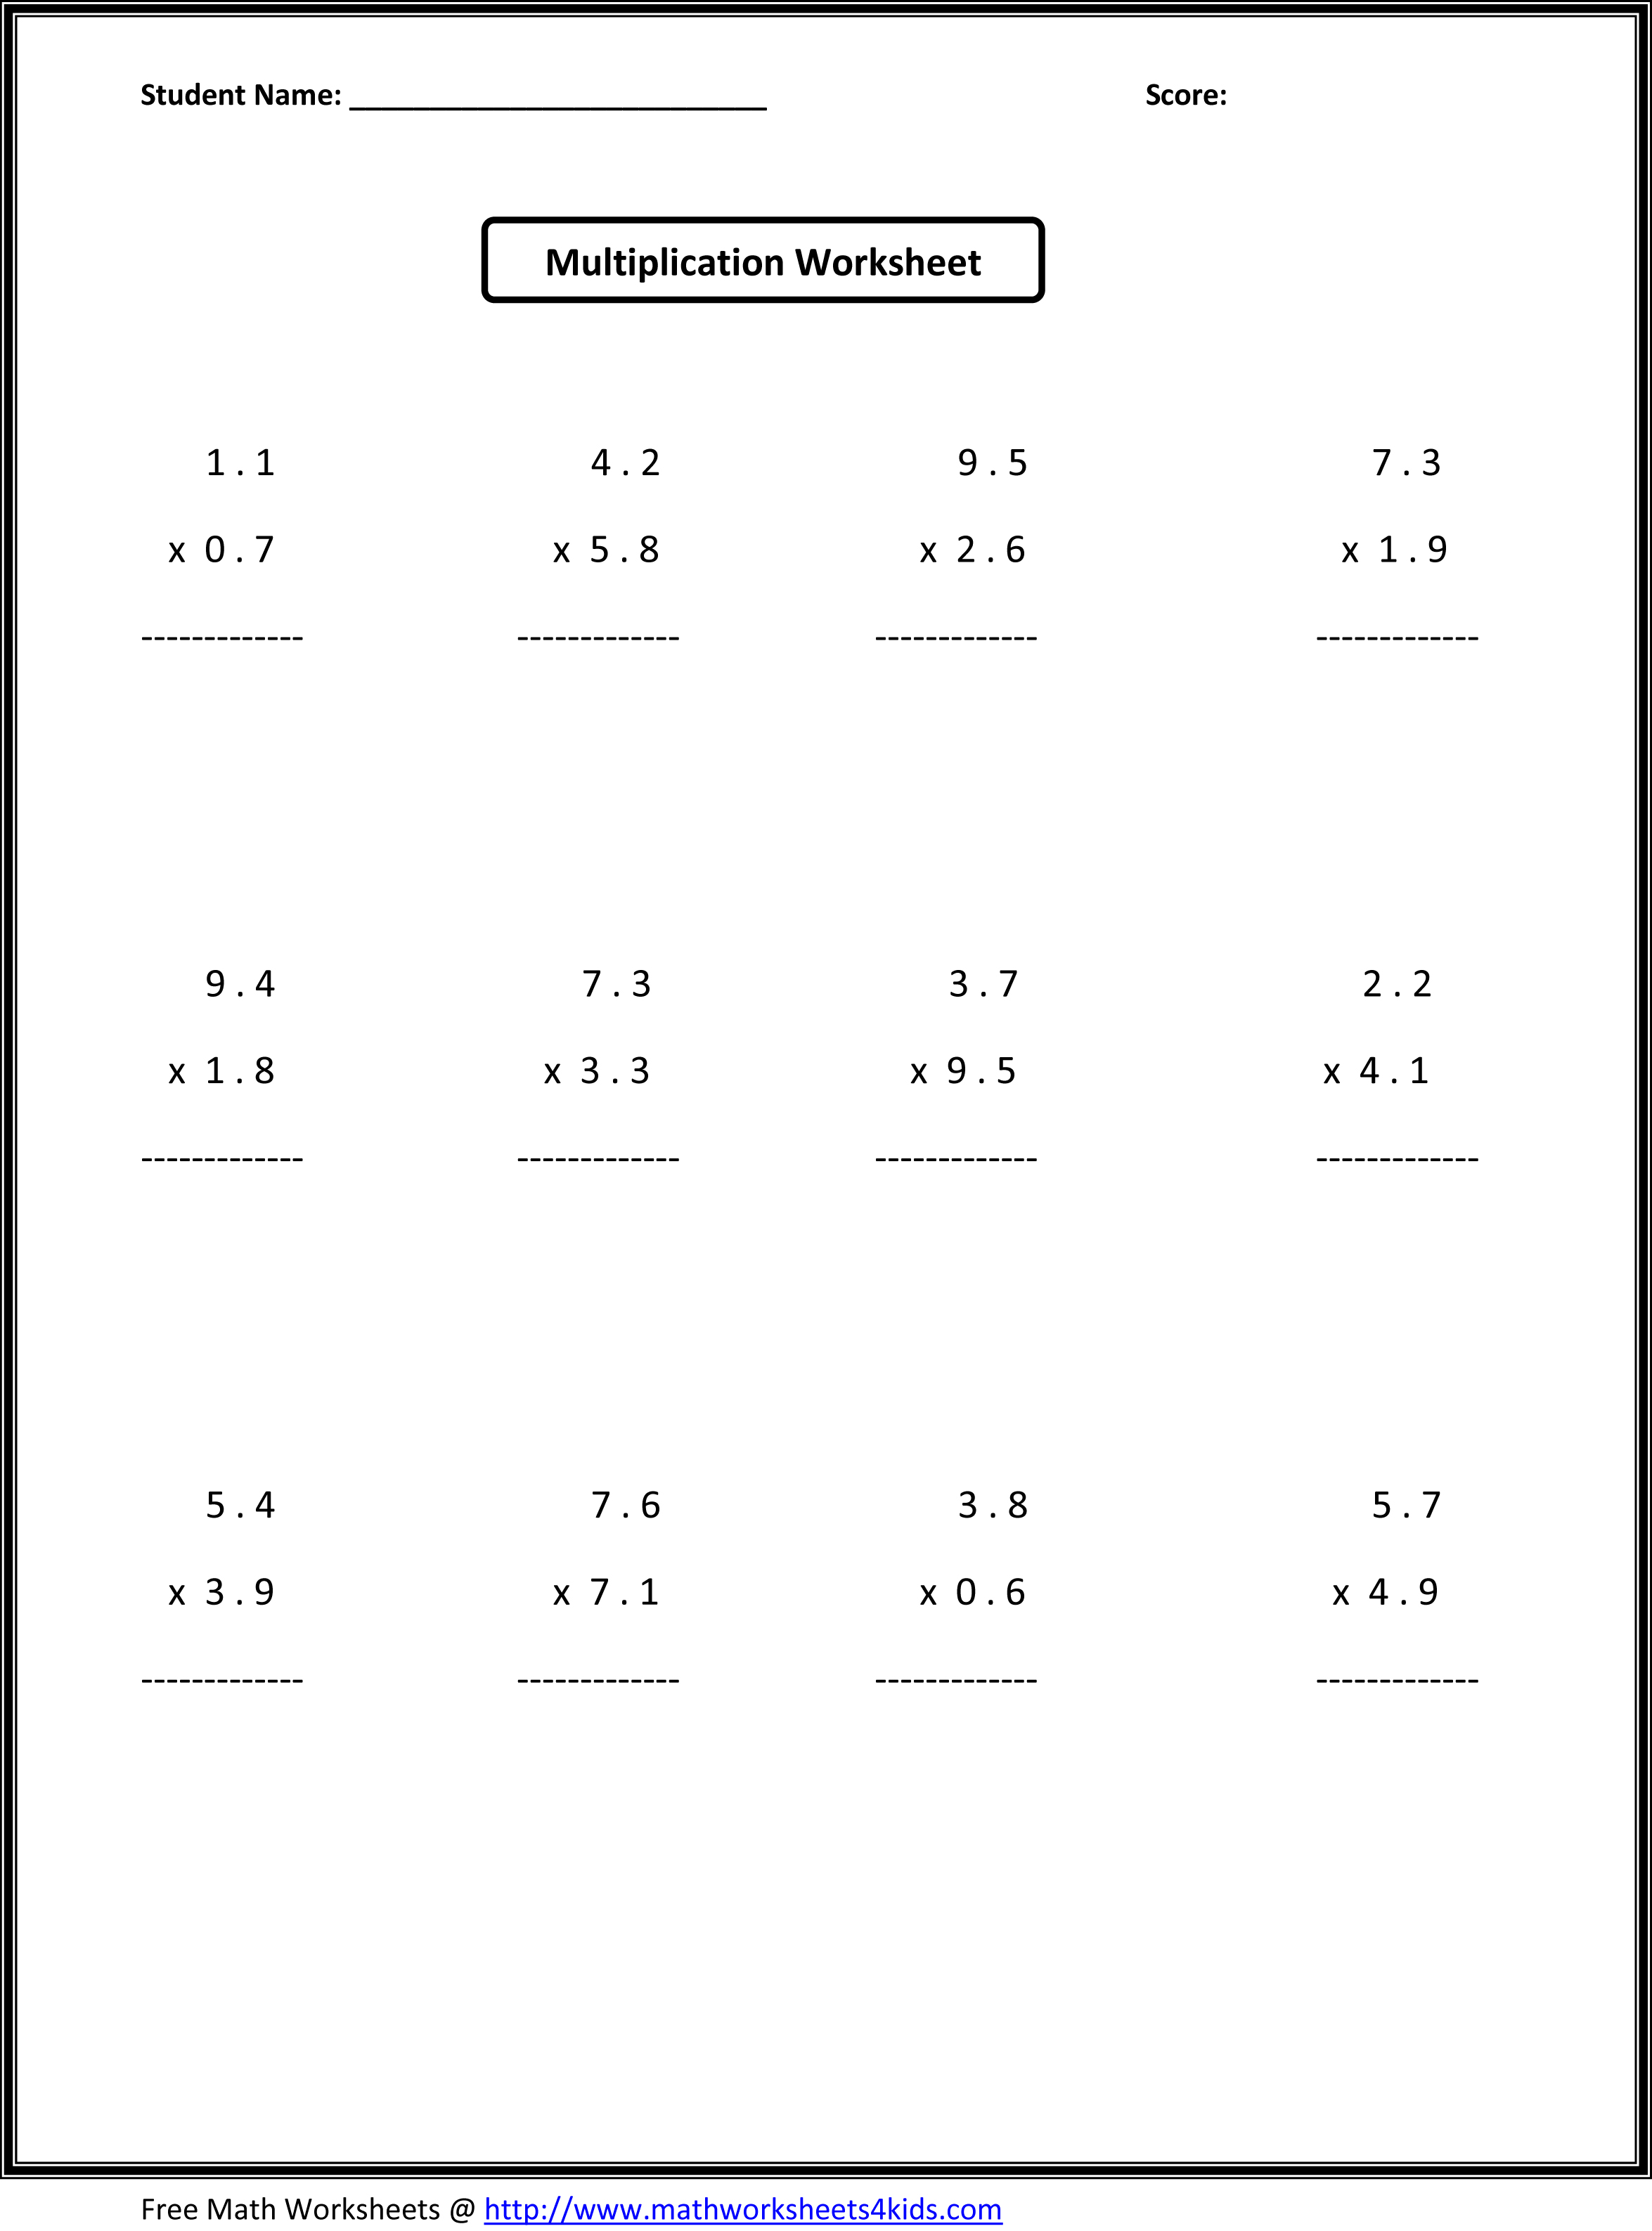 Printables Printable 6th Grade Math Worksheets printable worksheet for 6th grade math html standard 7th worksheets curriculum based